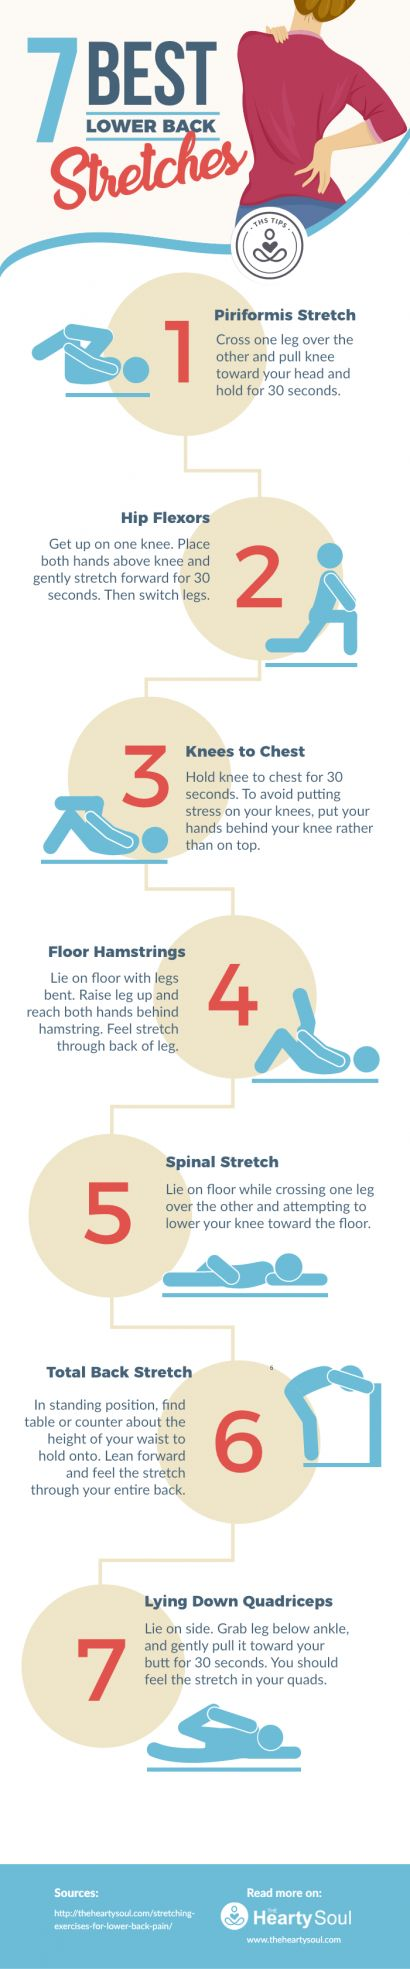 7 of the best lower back stretches for low back pain.  Read on to learn more!